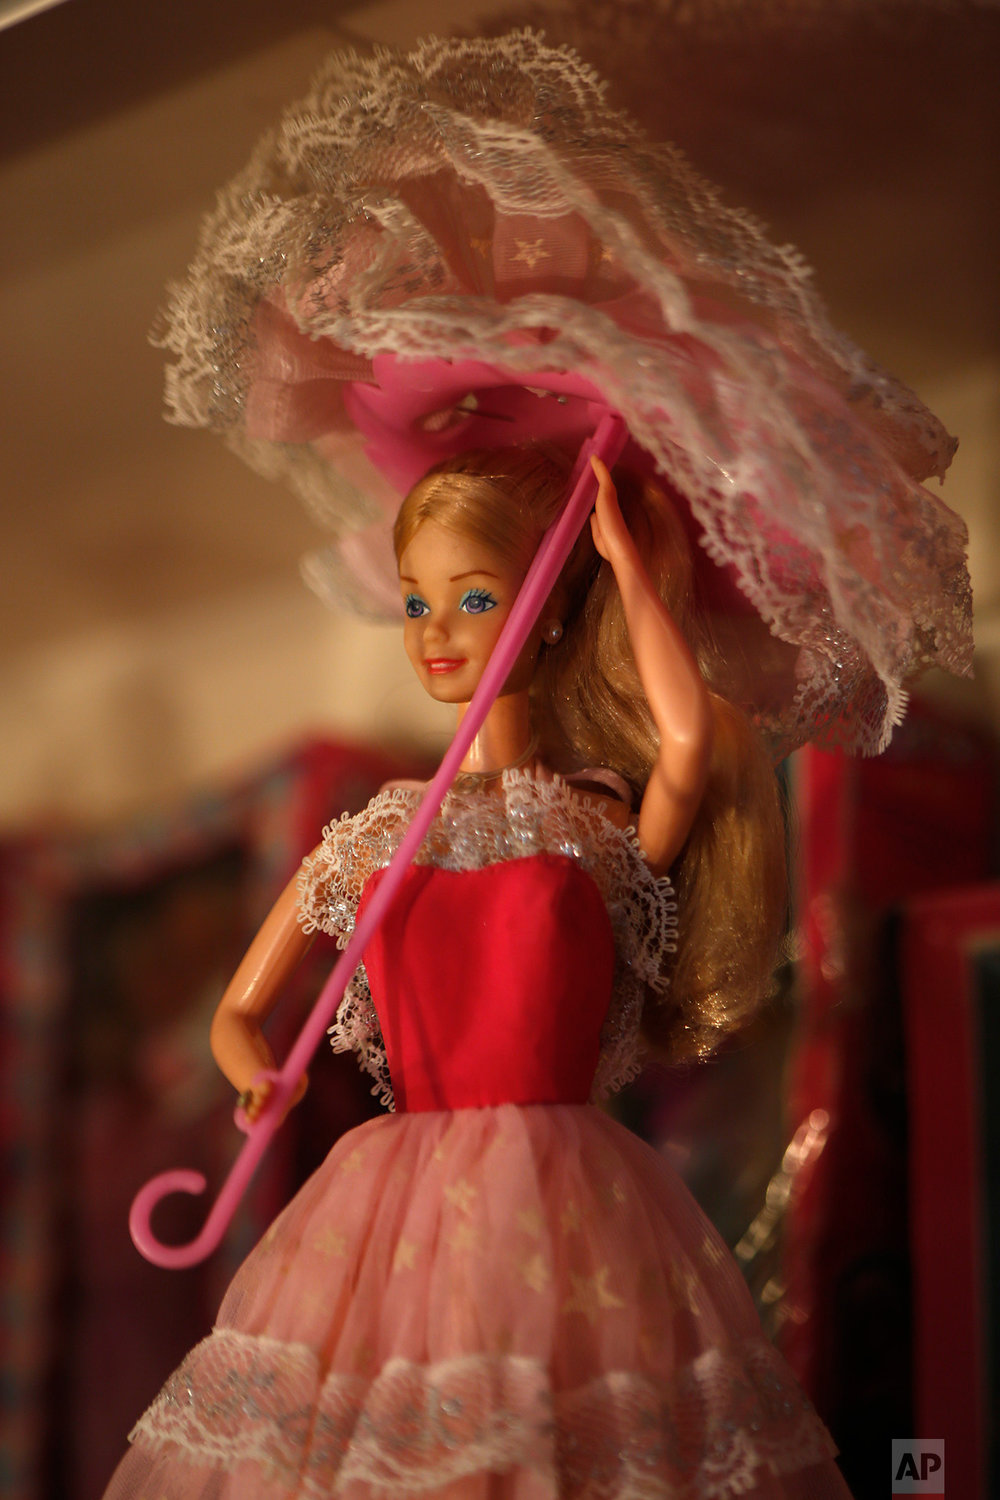 "In this Jan. 6, 2017 photo, a 1986 Barbie ""STAR Destello Magico"" model made in Mexico, is displayed prior to the opening of a Barbie doll exhibit at the Mexico Antique Toy Museum in Mexico City. Among the millions of items displayed in this museum, all sorts of Mexican wrestling paraphernalia and old traditional Mexican toys remind Mexicans of their rich cultural heritage as well as a blunt reminder that before the North American Free trade agreement was signed in the 1990's, Mexico had a robust, healthy and creative national toy industry that is now practically defunct.(AP Photo/Dario Lopez-Mills)"